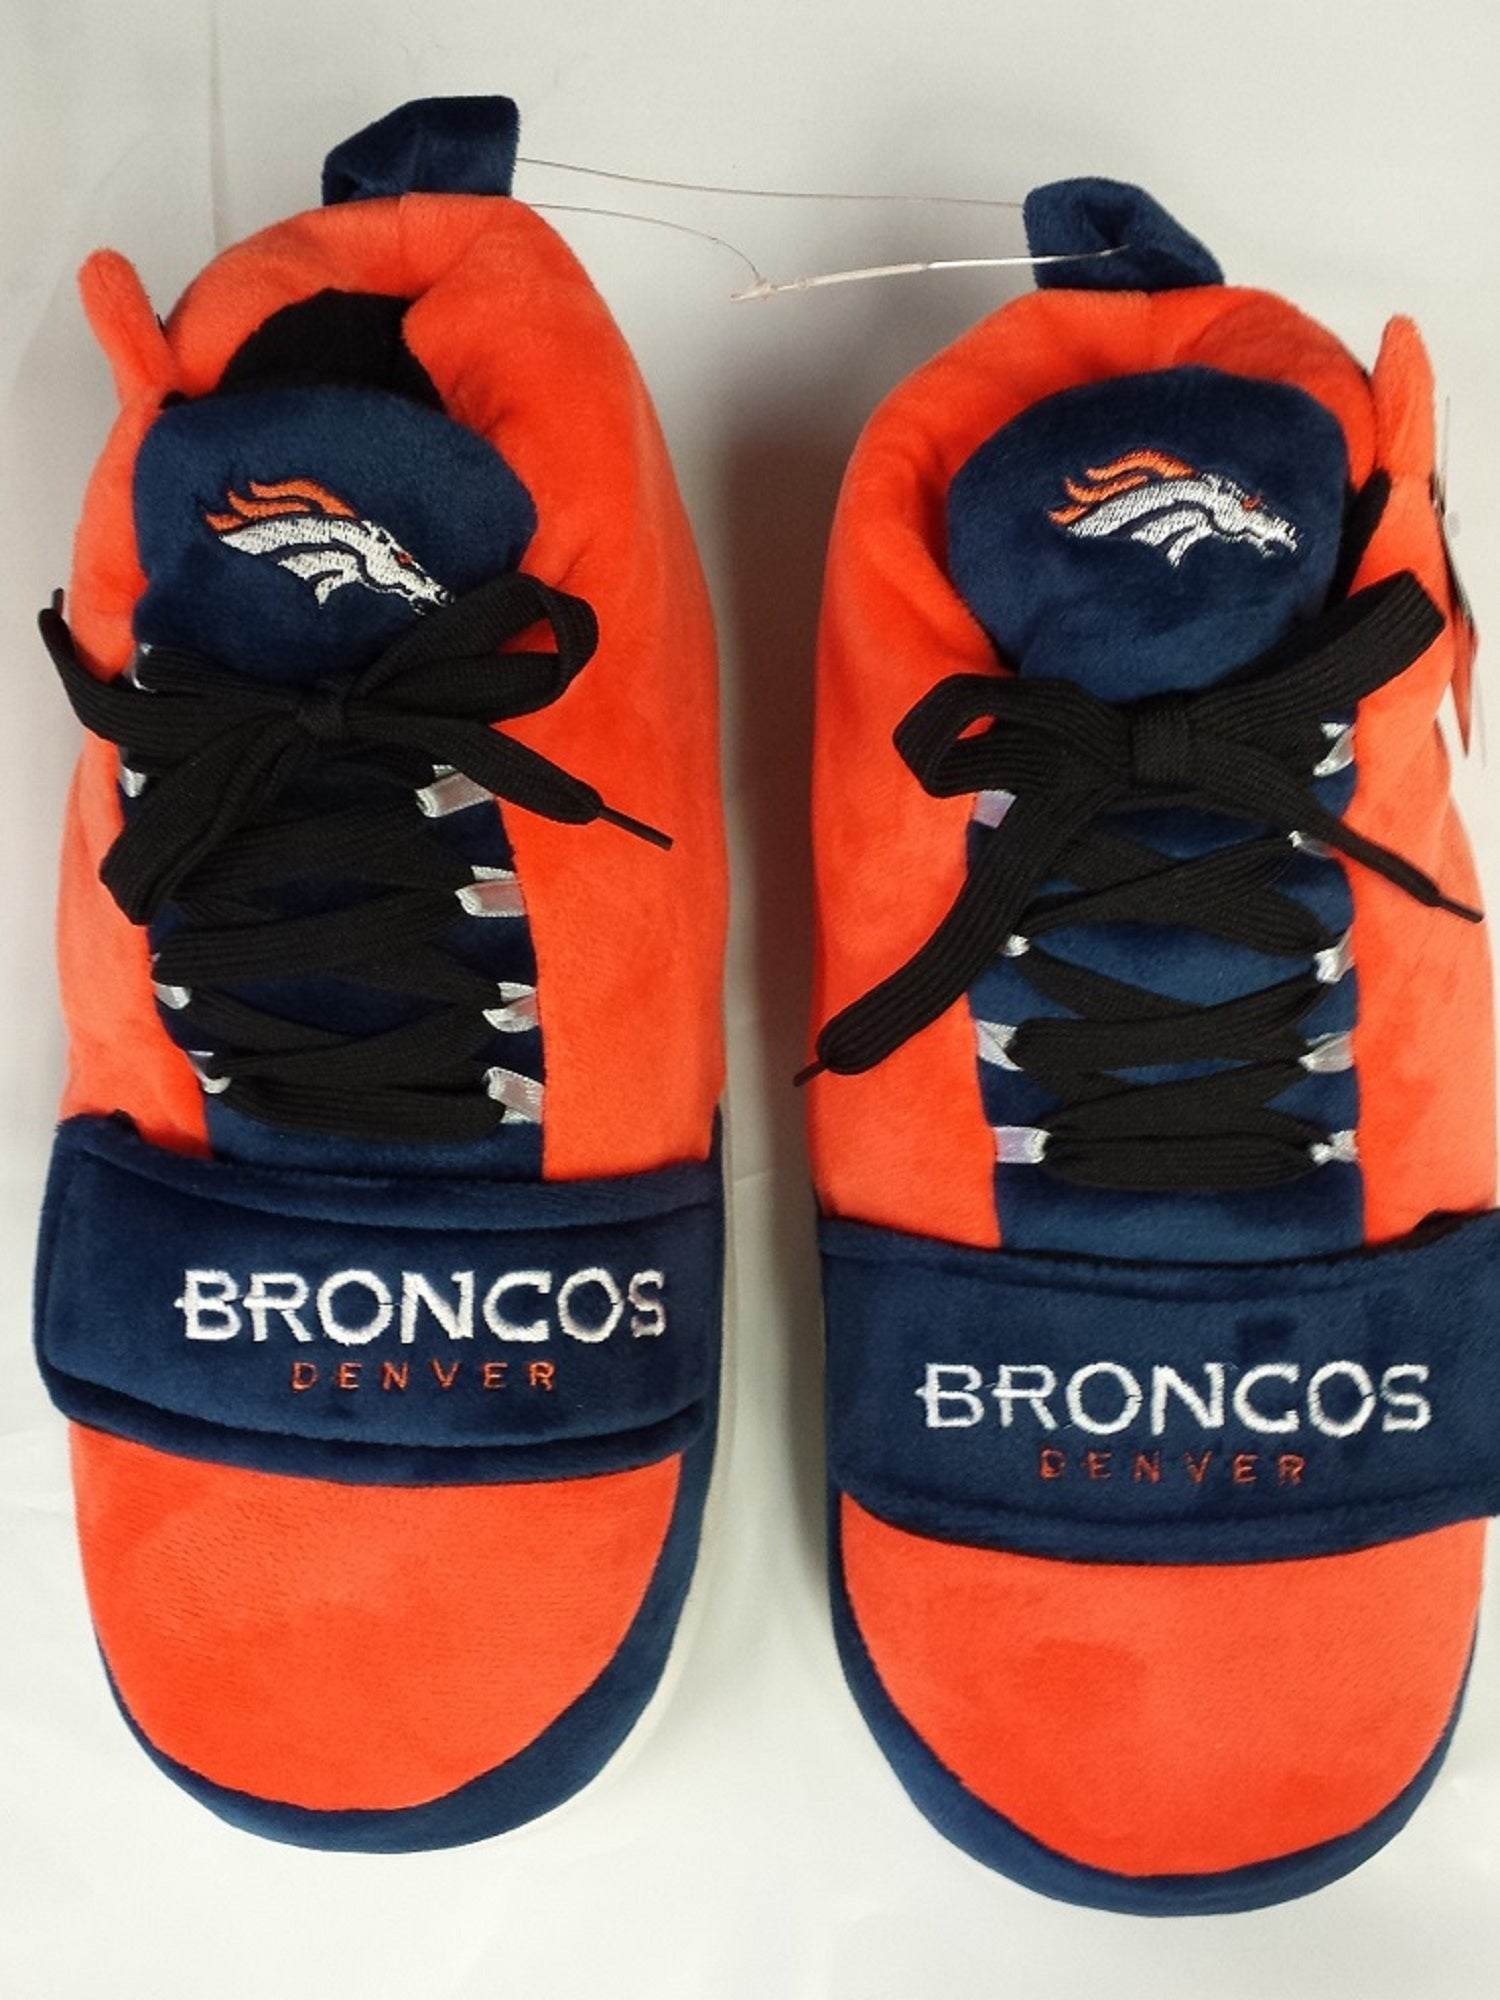 NFL Denver Broncos Puffy Sneakers Slippers, Large